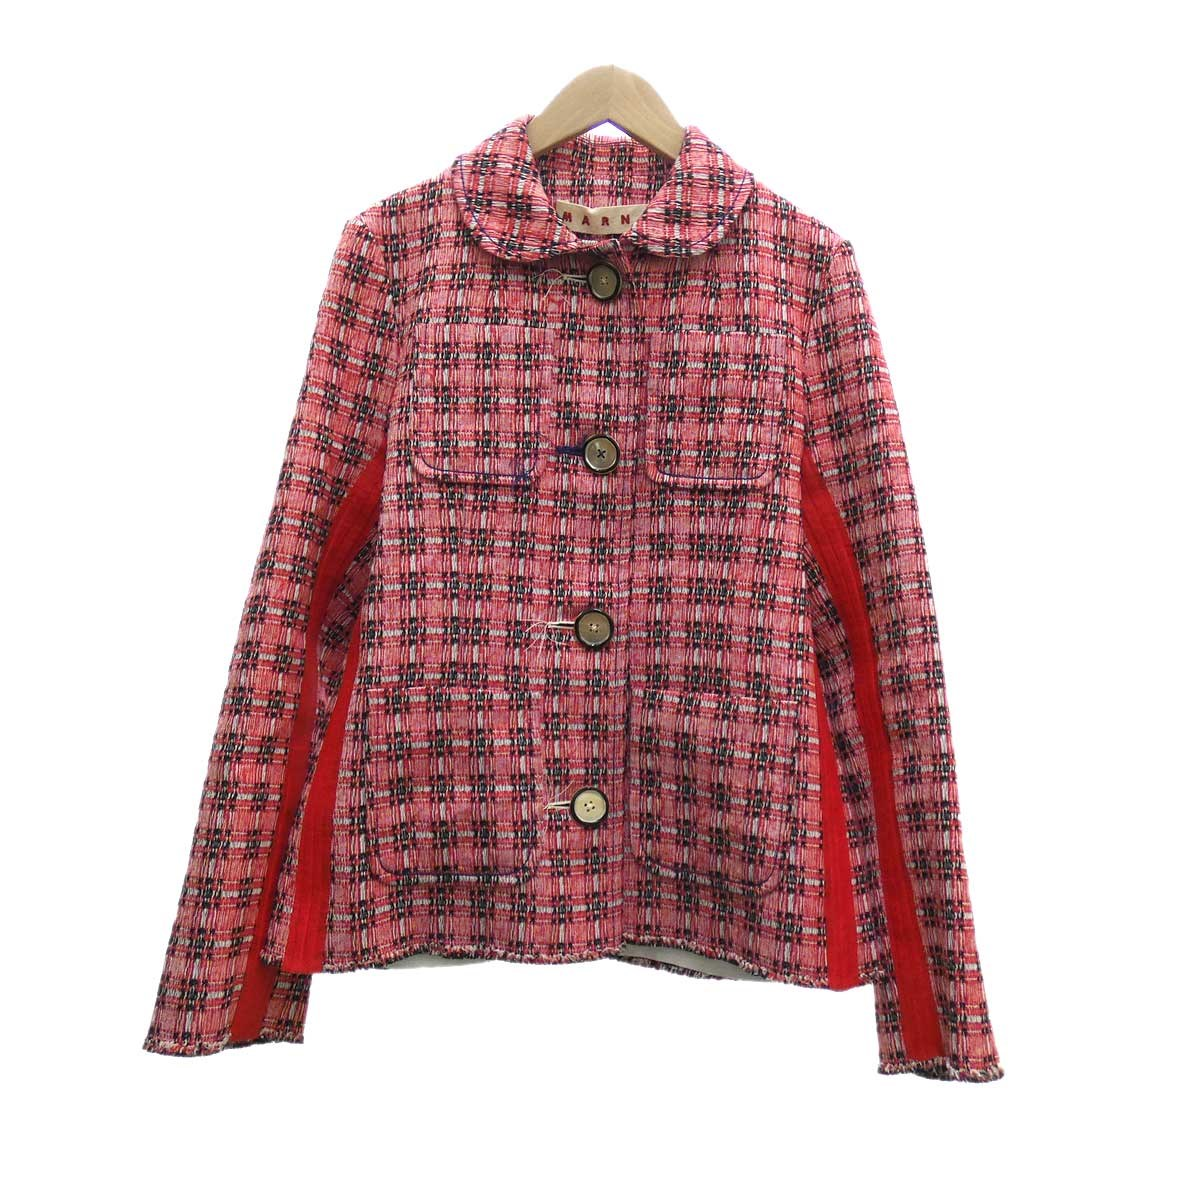 【中古】MARNI Plaid Side Stripe Jacket レッド サイズ:36 【050420】(マルニ)